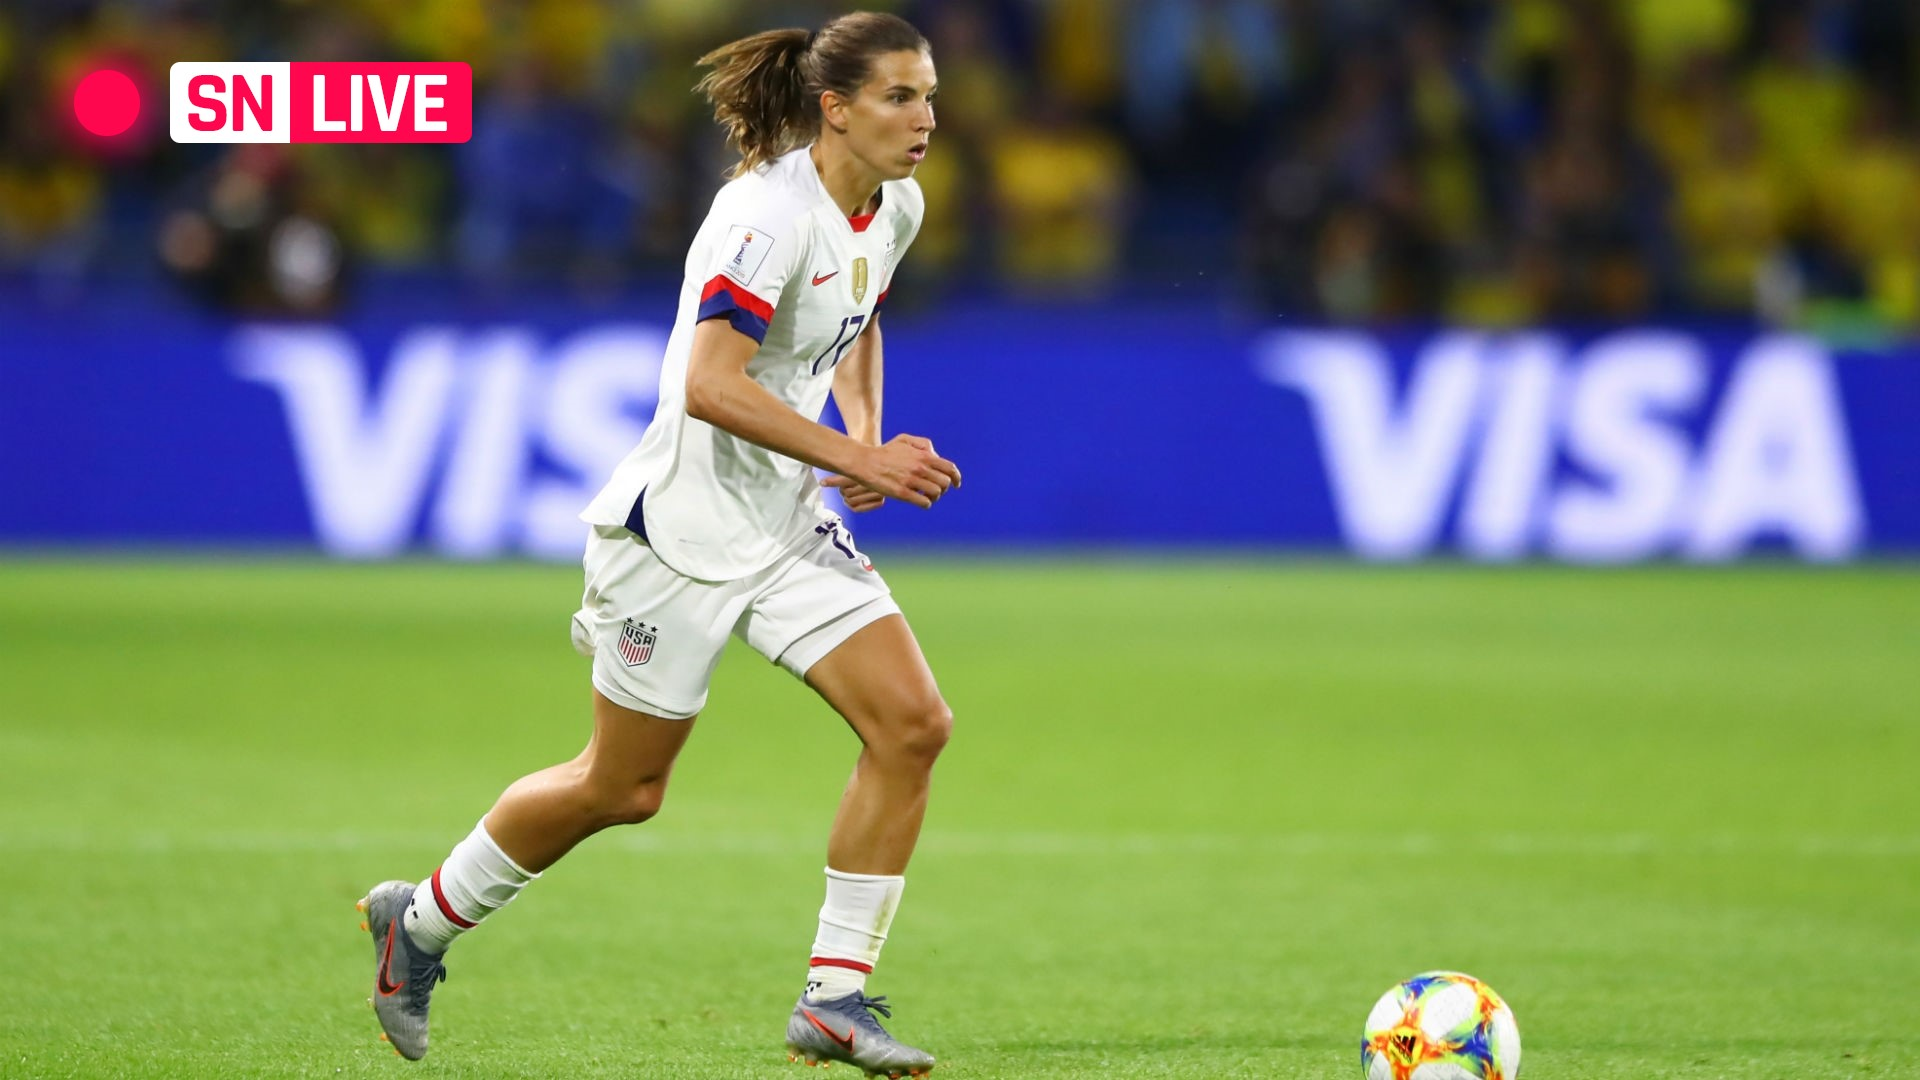 USWNT vs. Spain results: Megan Rapinoe penalty brace helps USA survive first challenge at World Cup